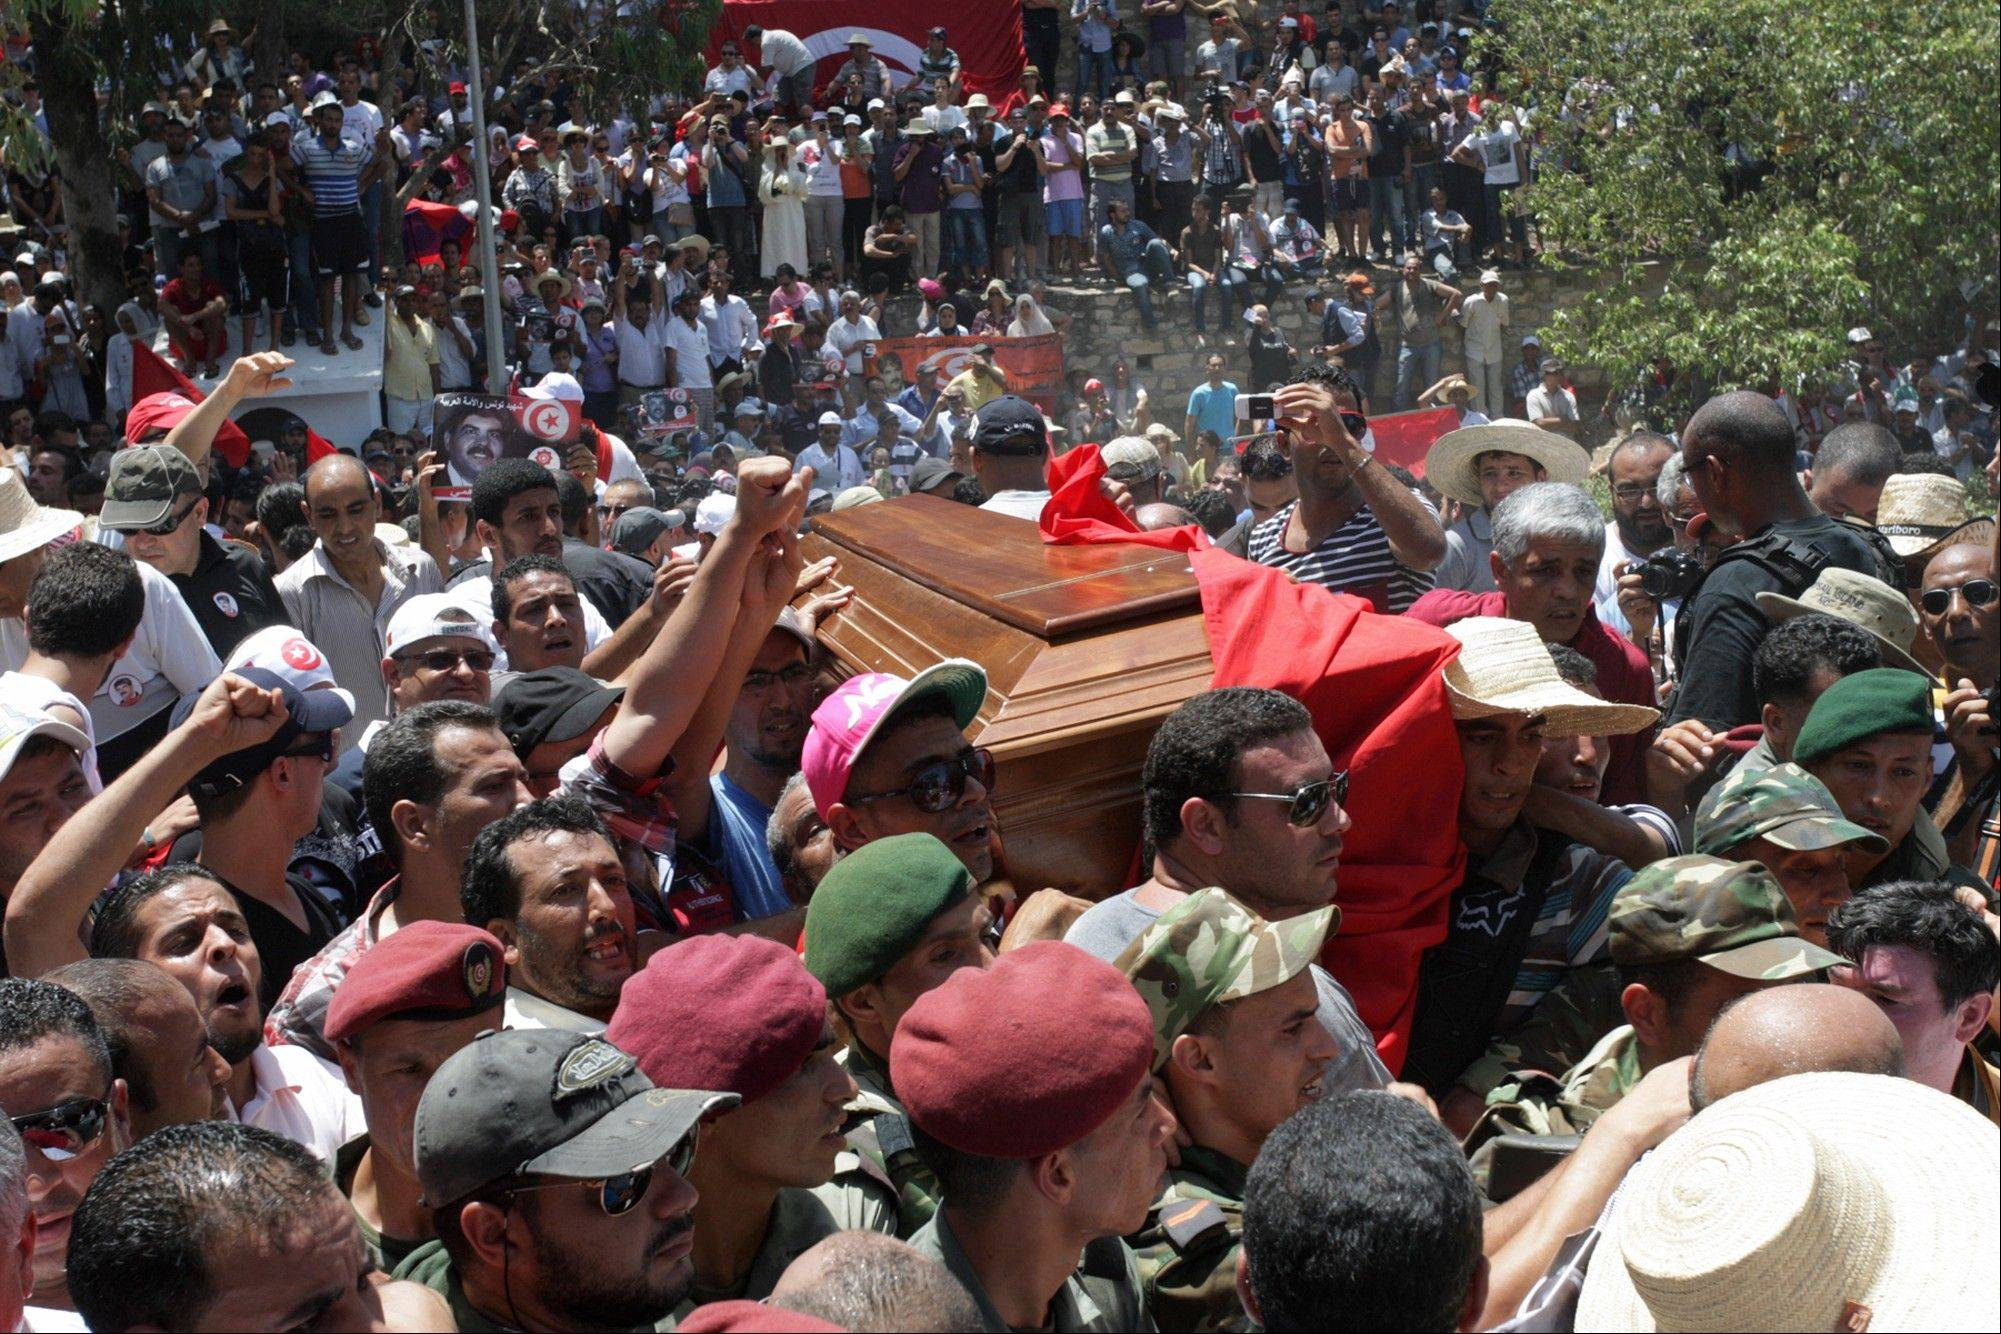 Tunisians carry the coffin of Tunisian opposition politician Mohammed Brahmi during his funeral at Jallez Cemetery in Tunis, Saturday July, 27, 2013. Mohamed Brahmi was shot 14 times in front of his home within sight of his family on Thursday, plunging the country into a political crisis and unleashing demonstrations around the country blaming the government for the assassination. Tunisia�s prime minister said Monday the government will not step down despite opposition demands.